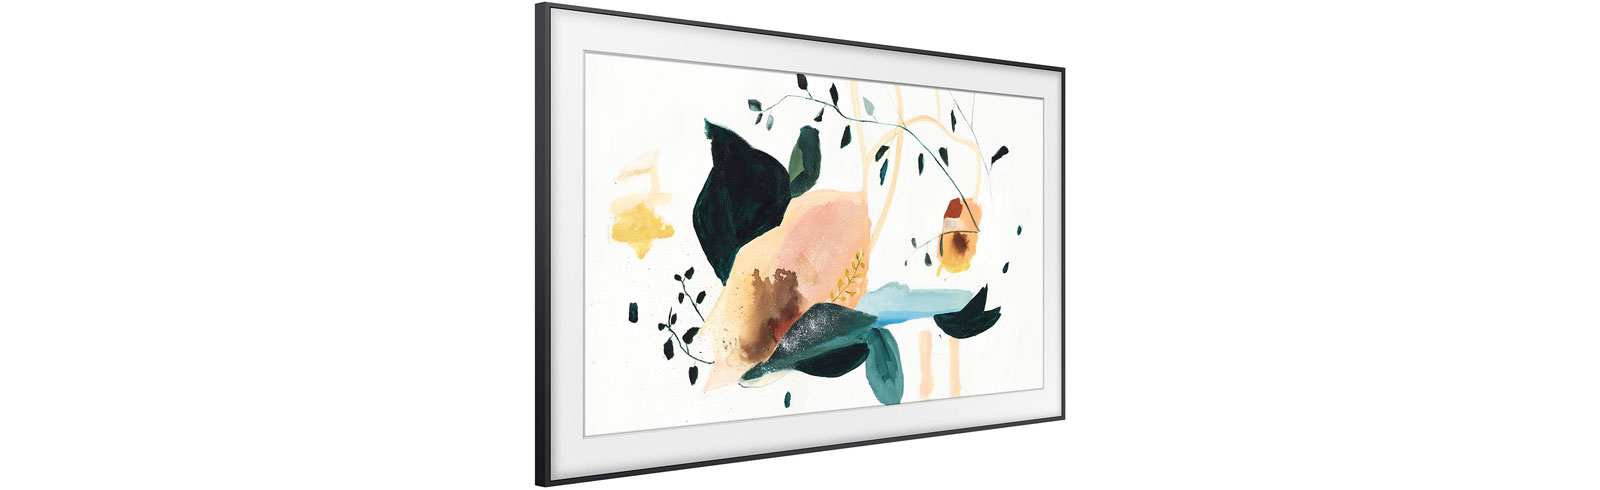 The Samsung QN75LS03T Frame QLED TV is launched - price and specifications